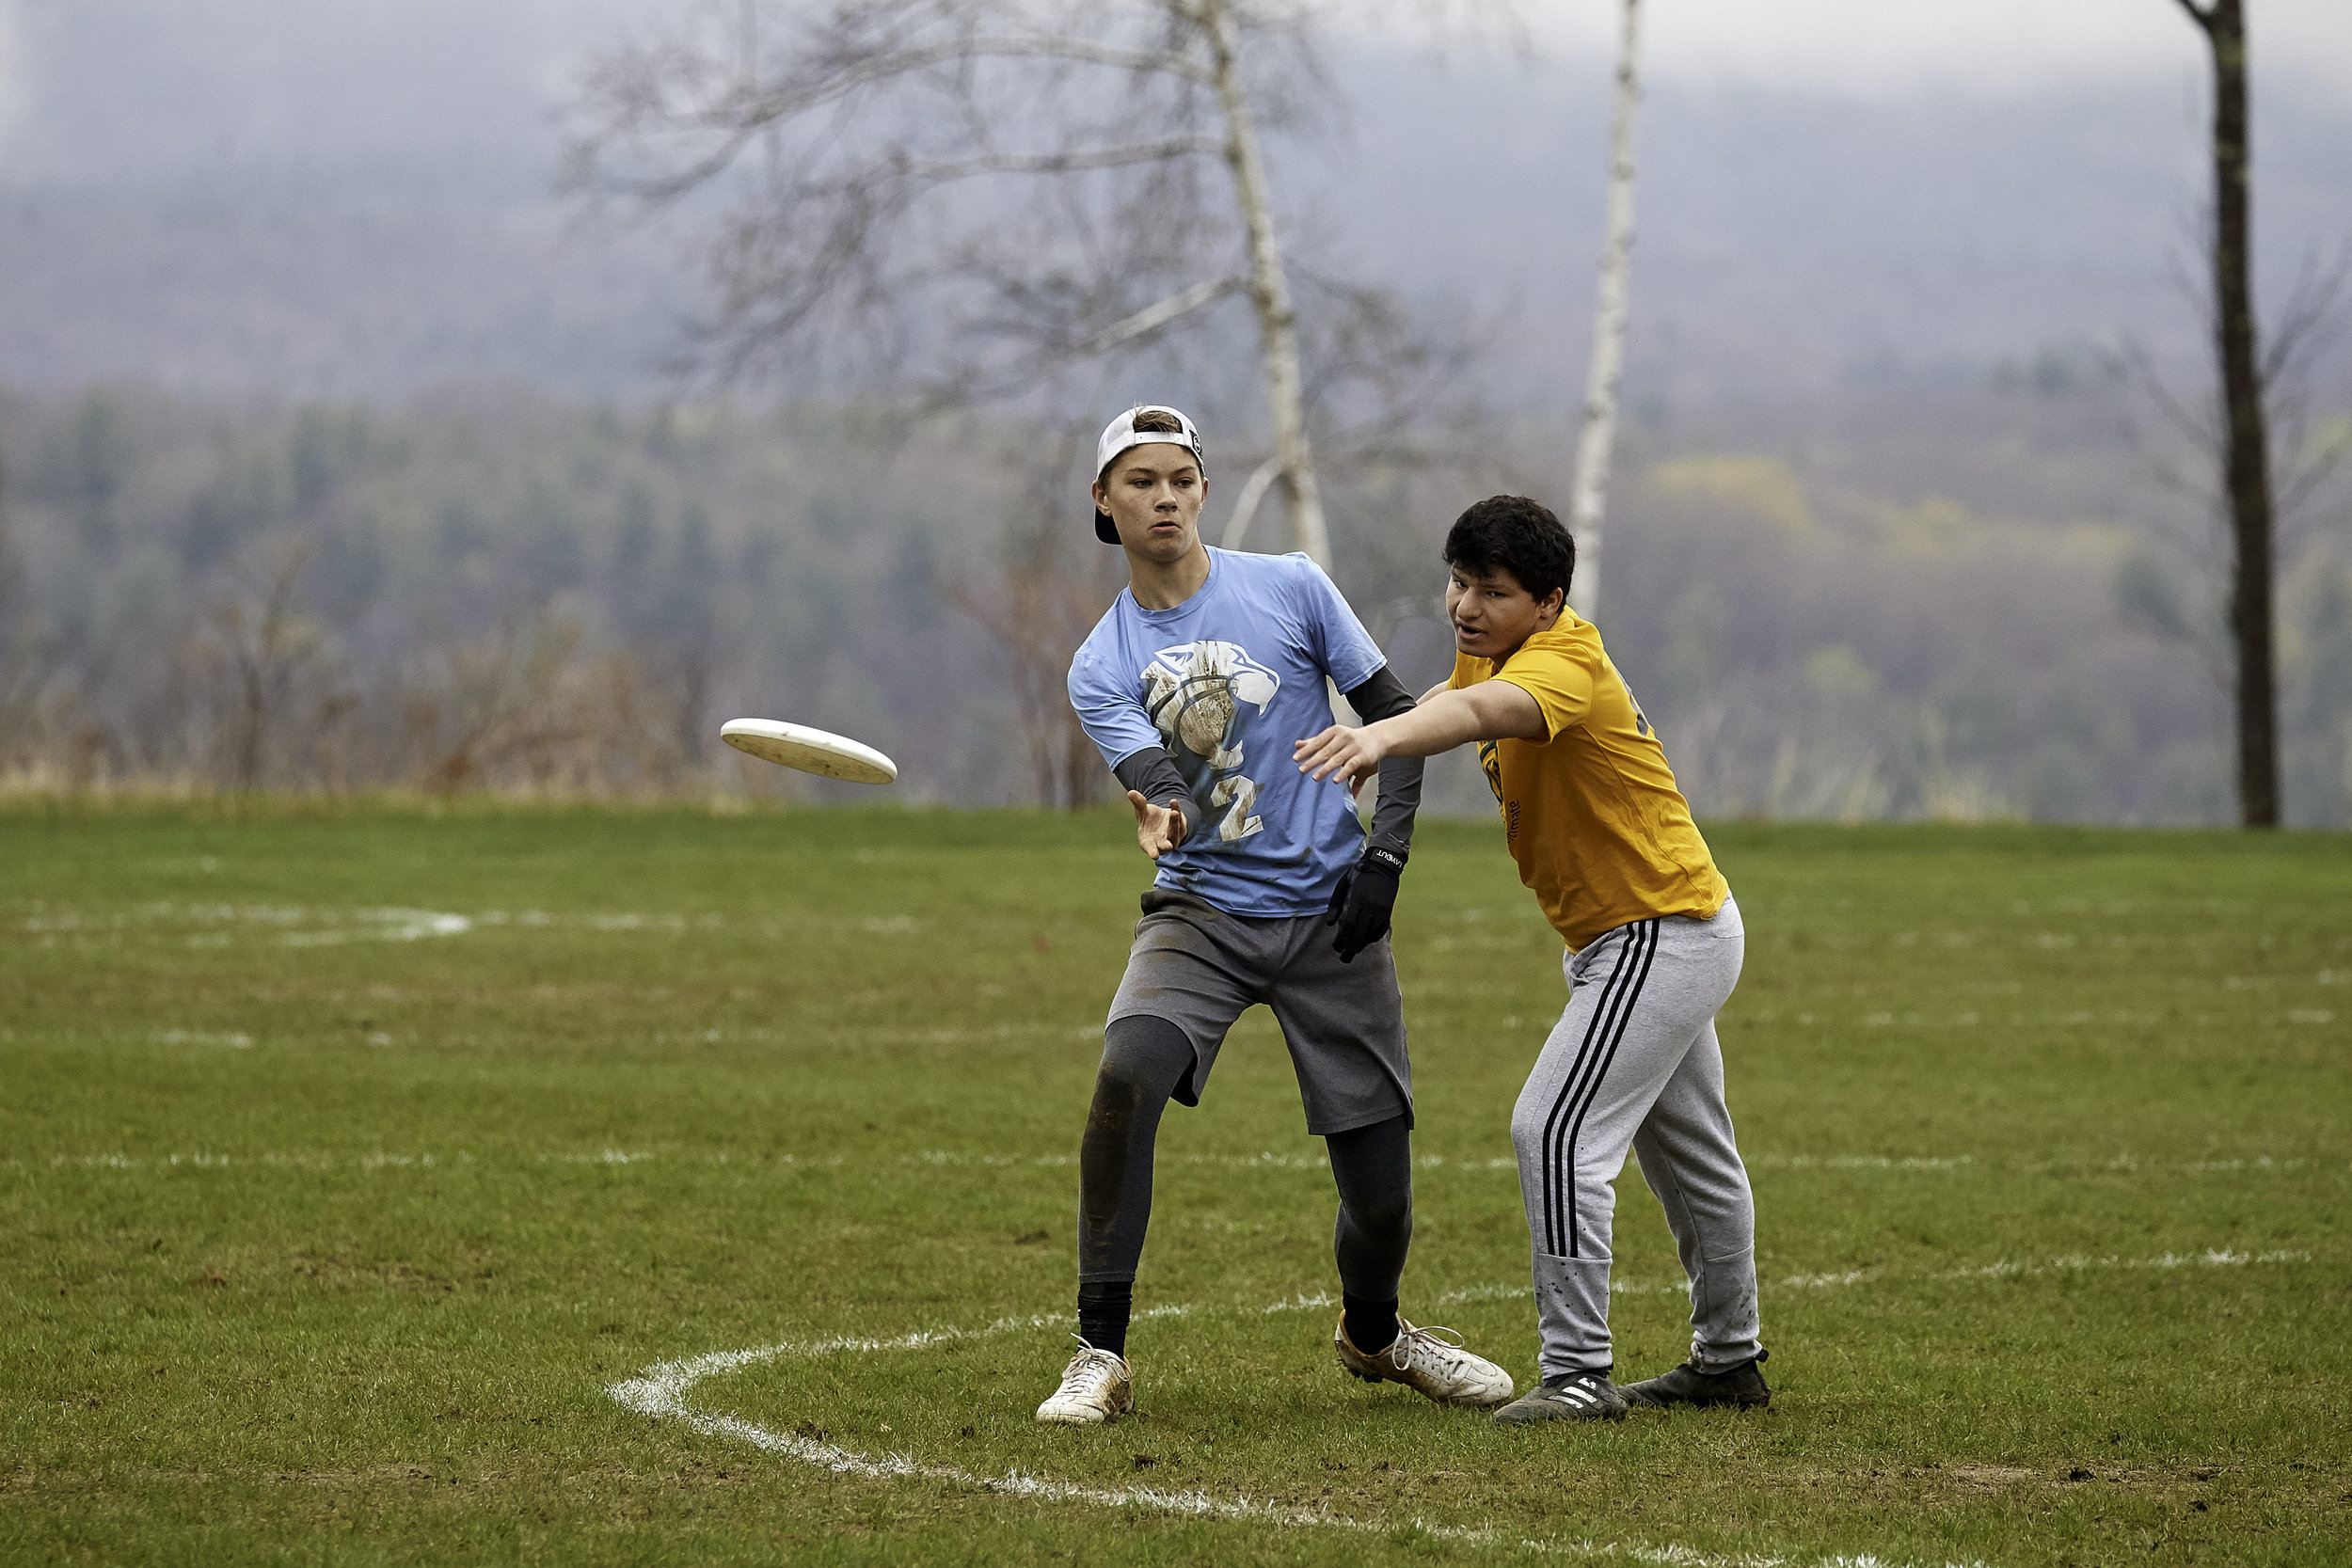 Ultimate Frisbee vs. Eagle Hill School - May 3, 2019 - 188370.jpg